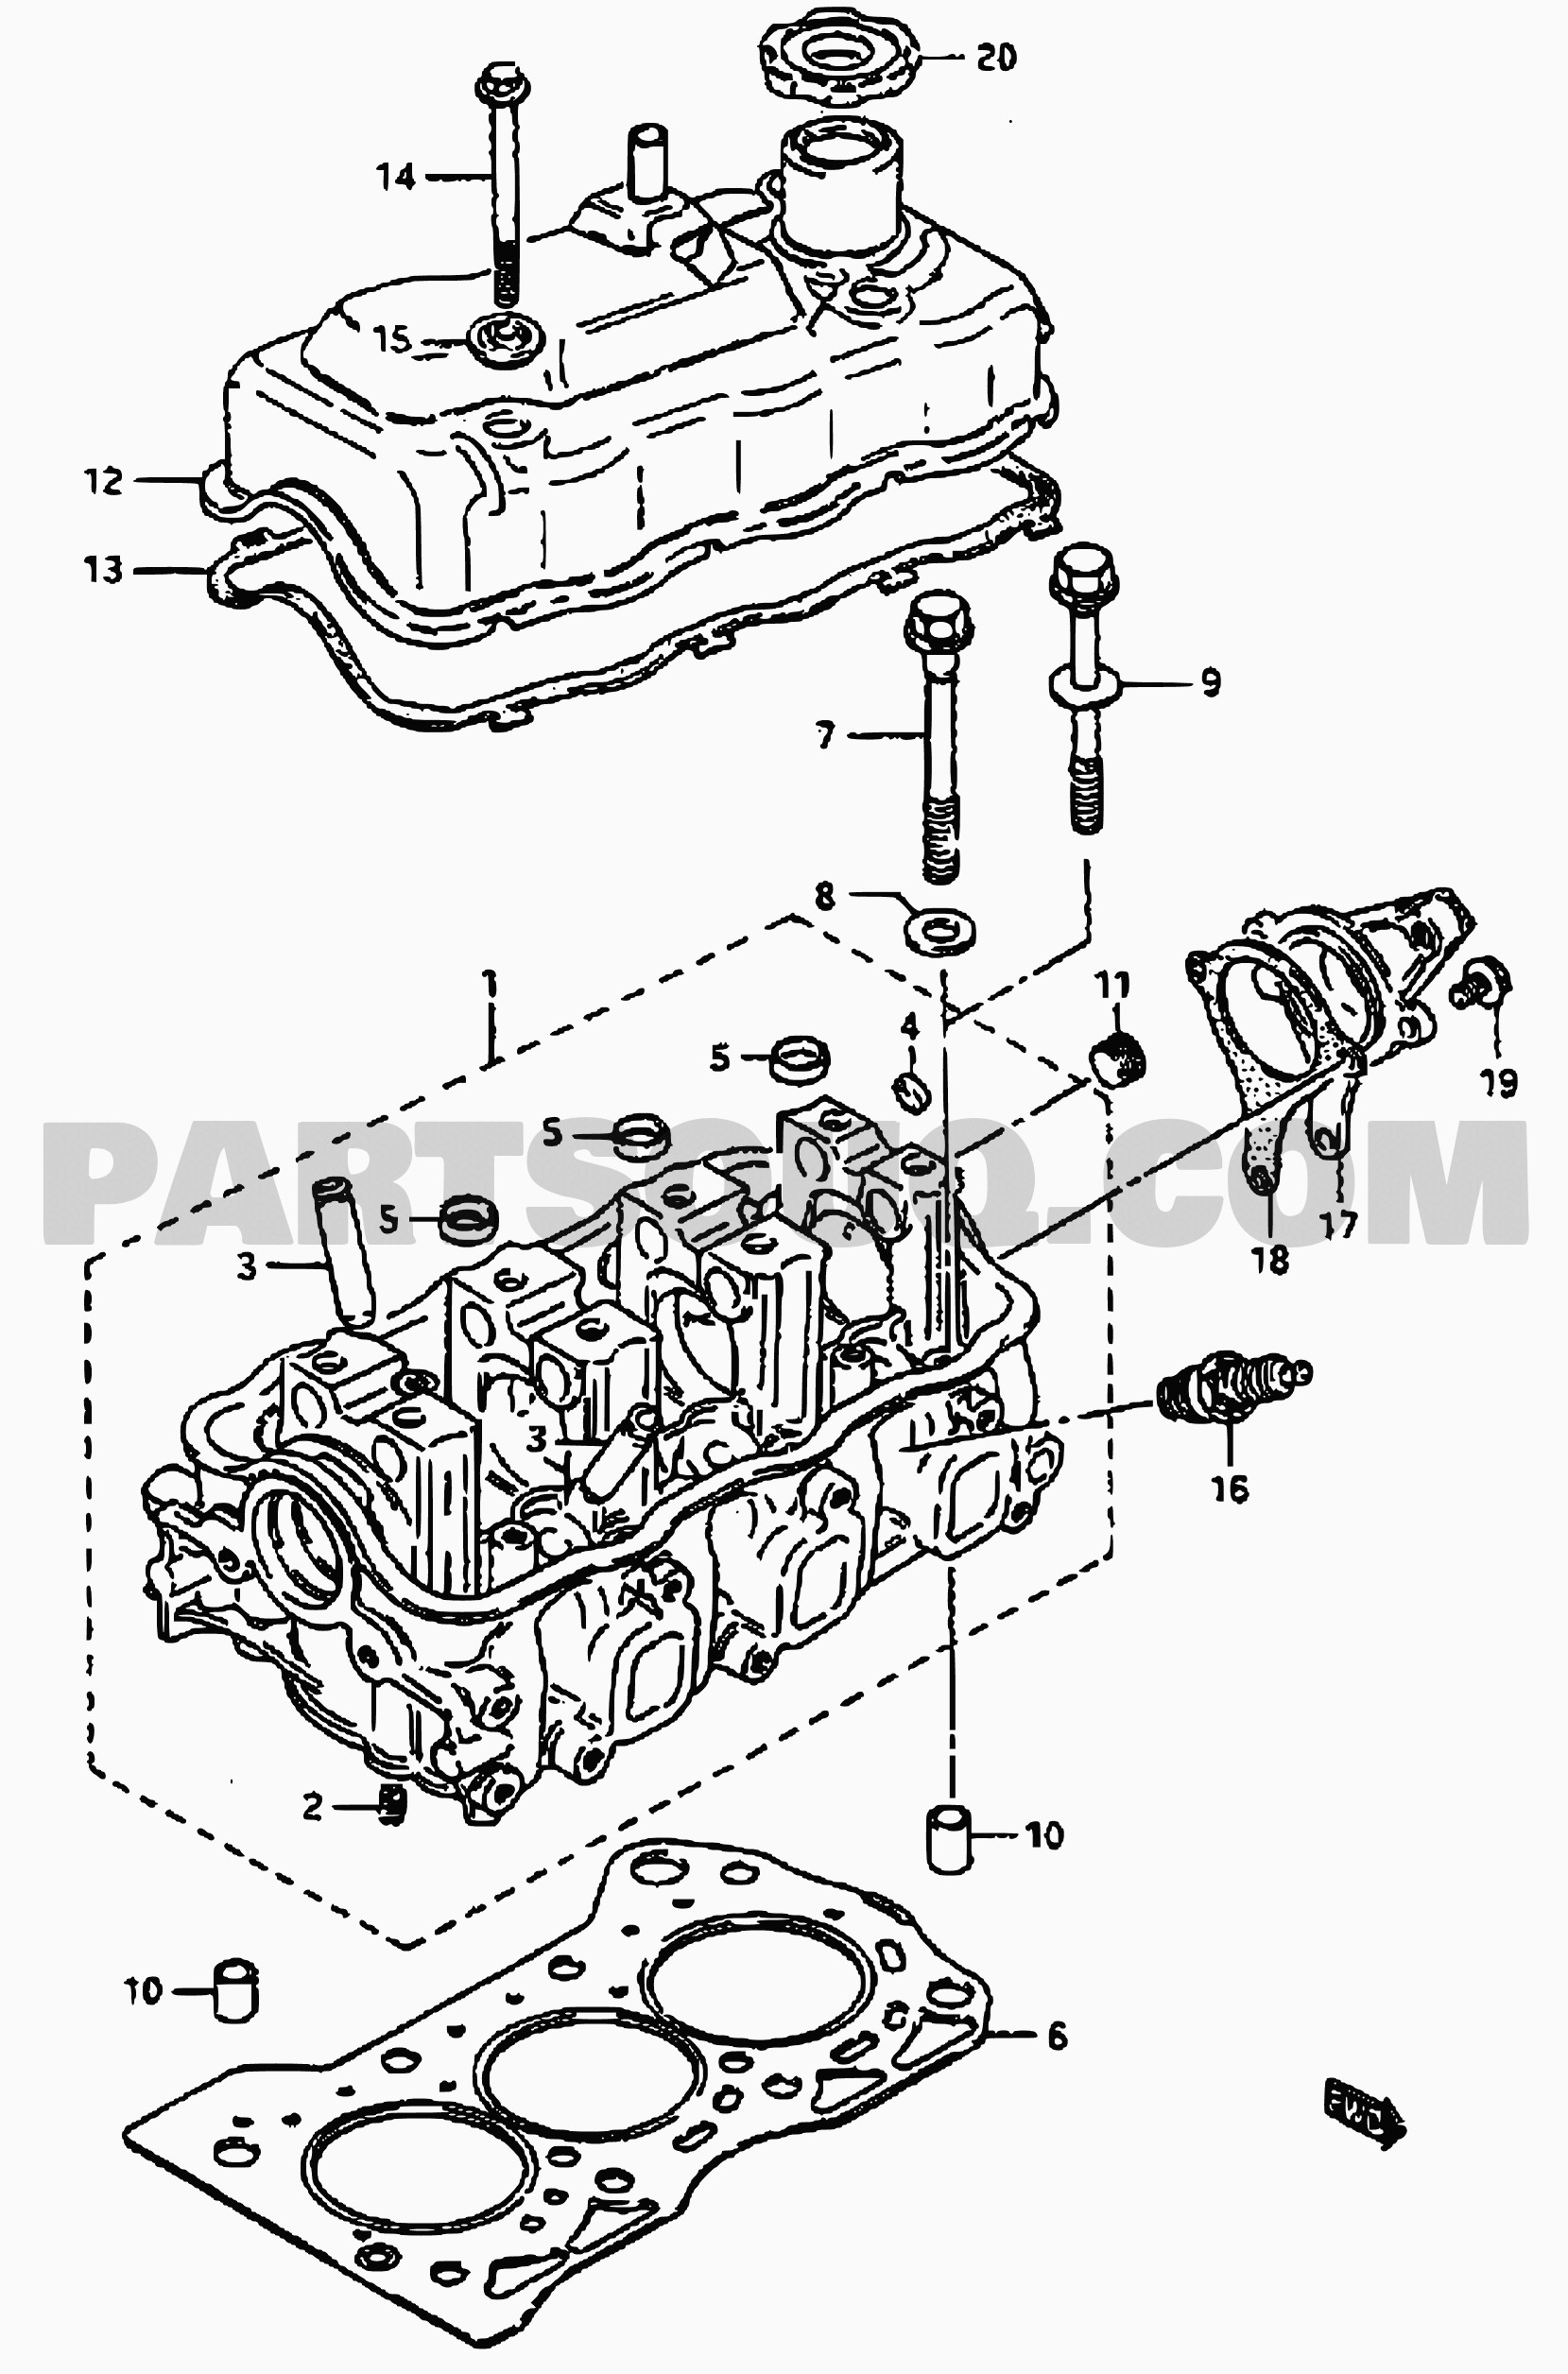 suzuki swift engine diagram